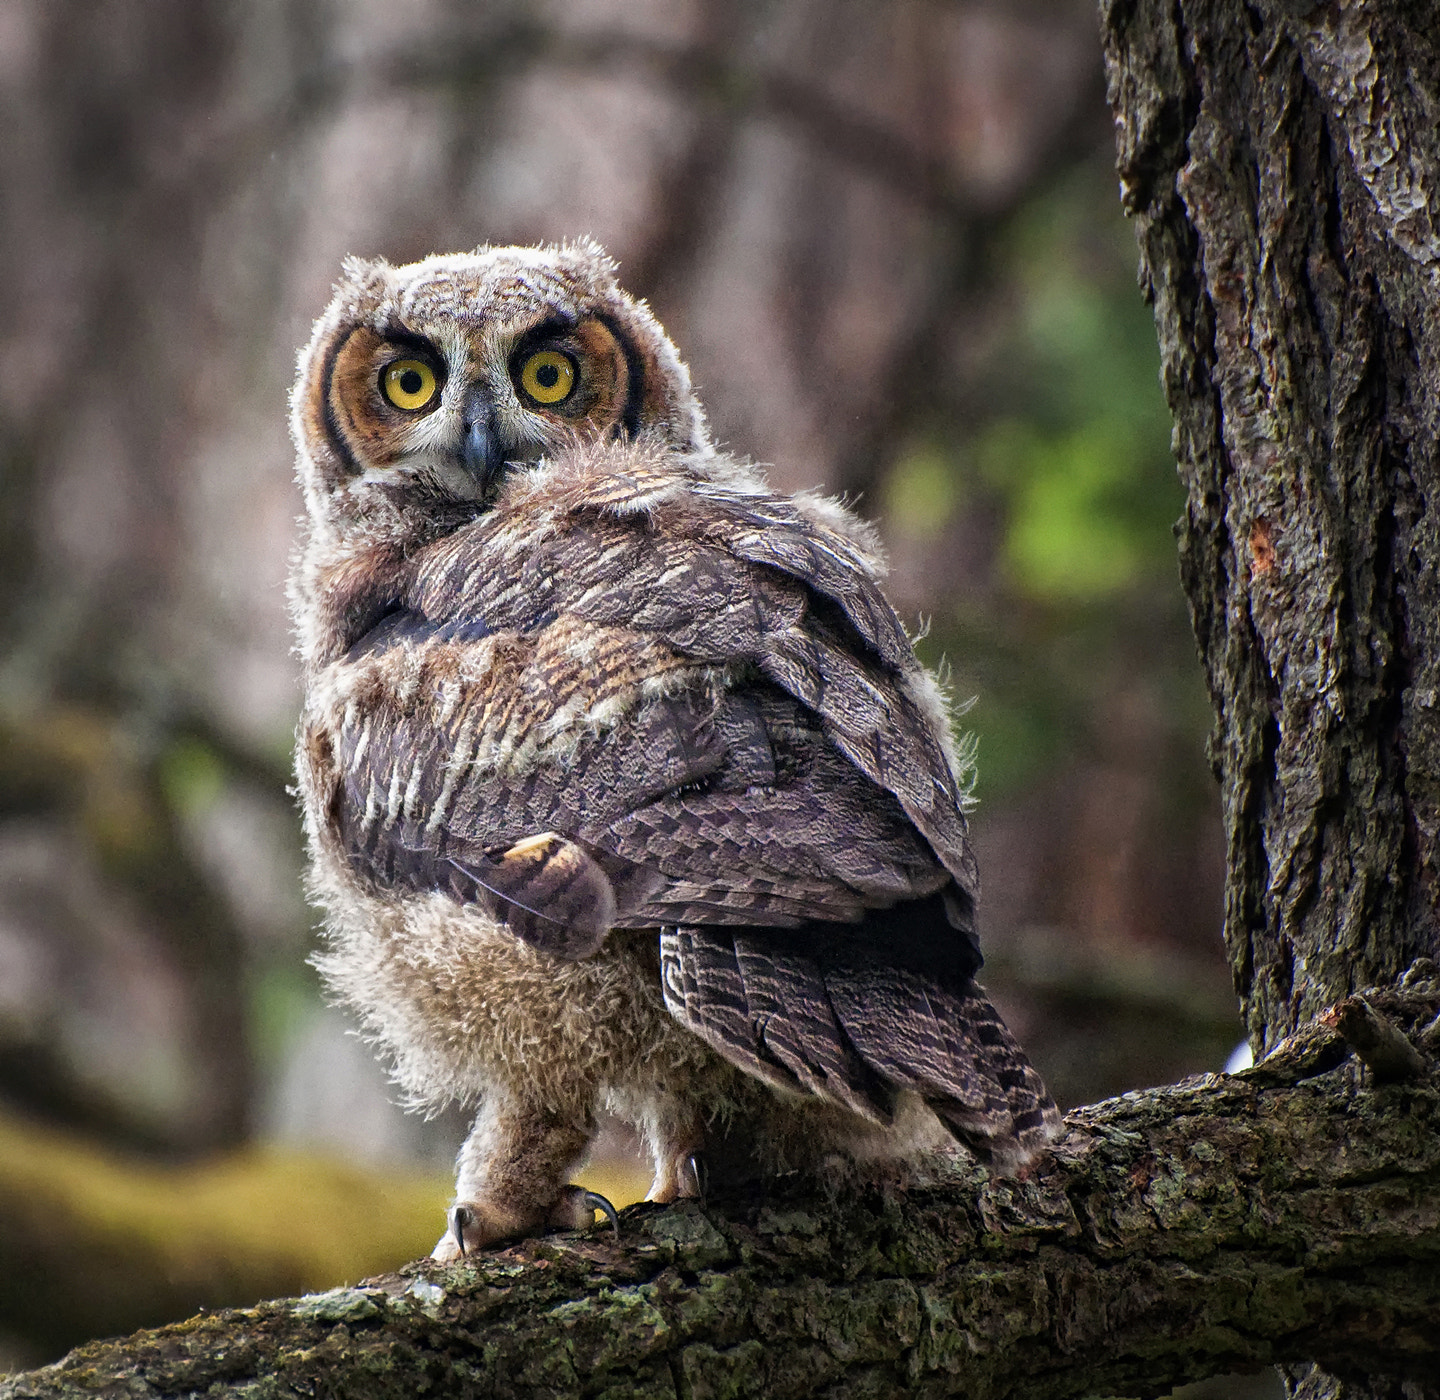 Photograph Juvenile Great Horned Owl by Derek Galon on 500px